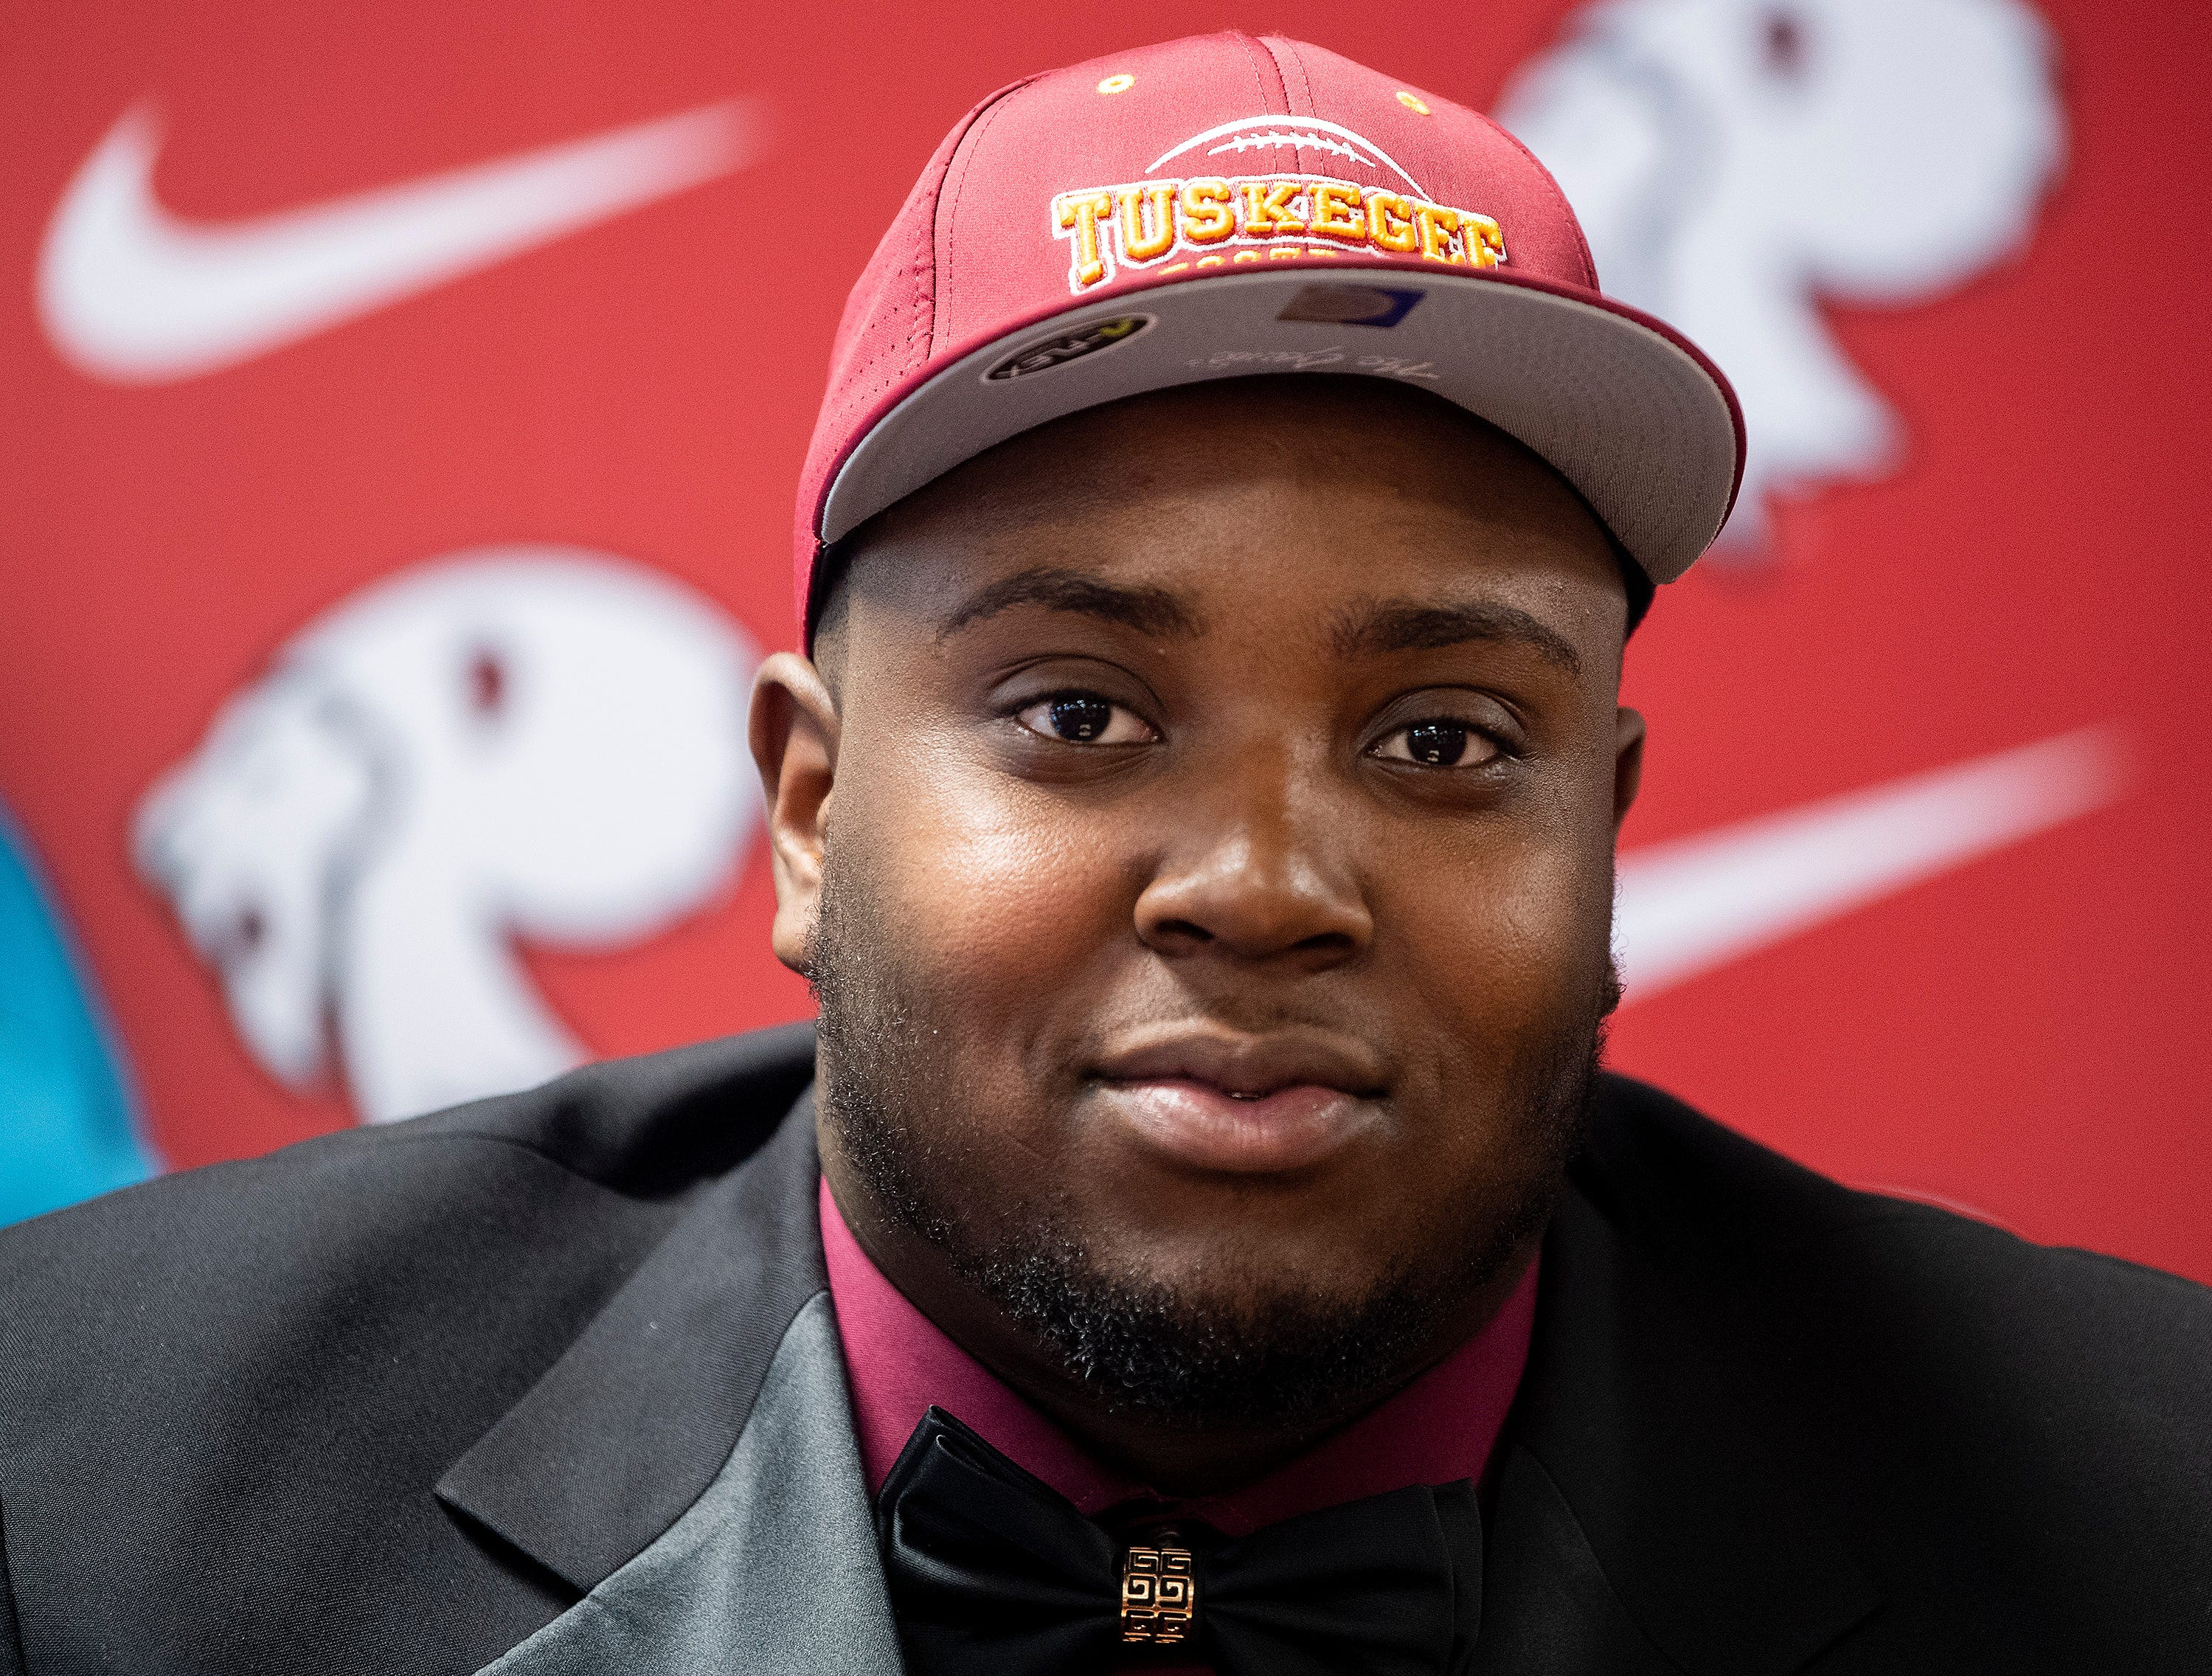 Prattville's Chris Bozeman signs to play at Tuskegee during college football signing day at the school's campus in Pratttville, Ala., on Wednesday February 6, 2019.